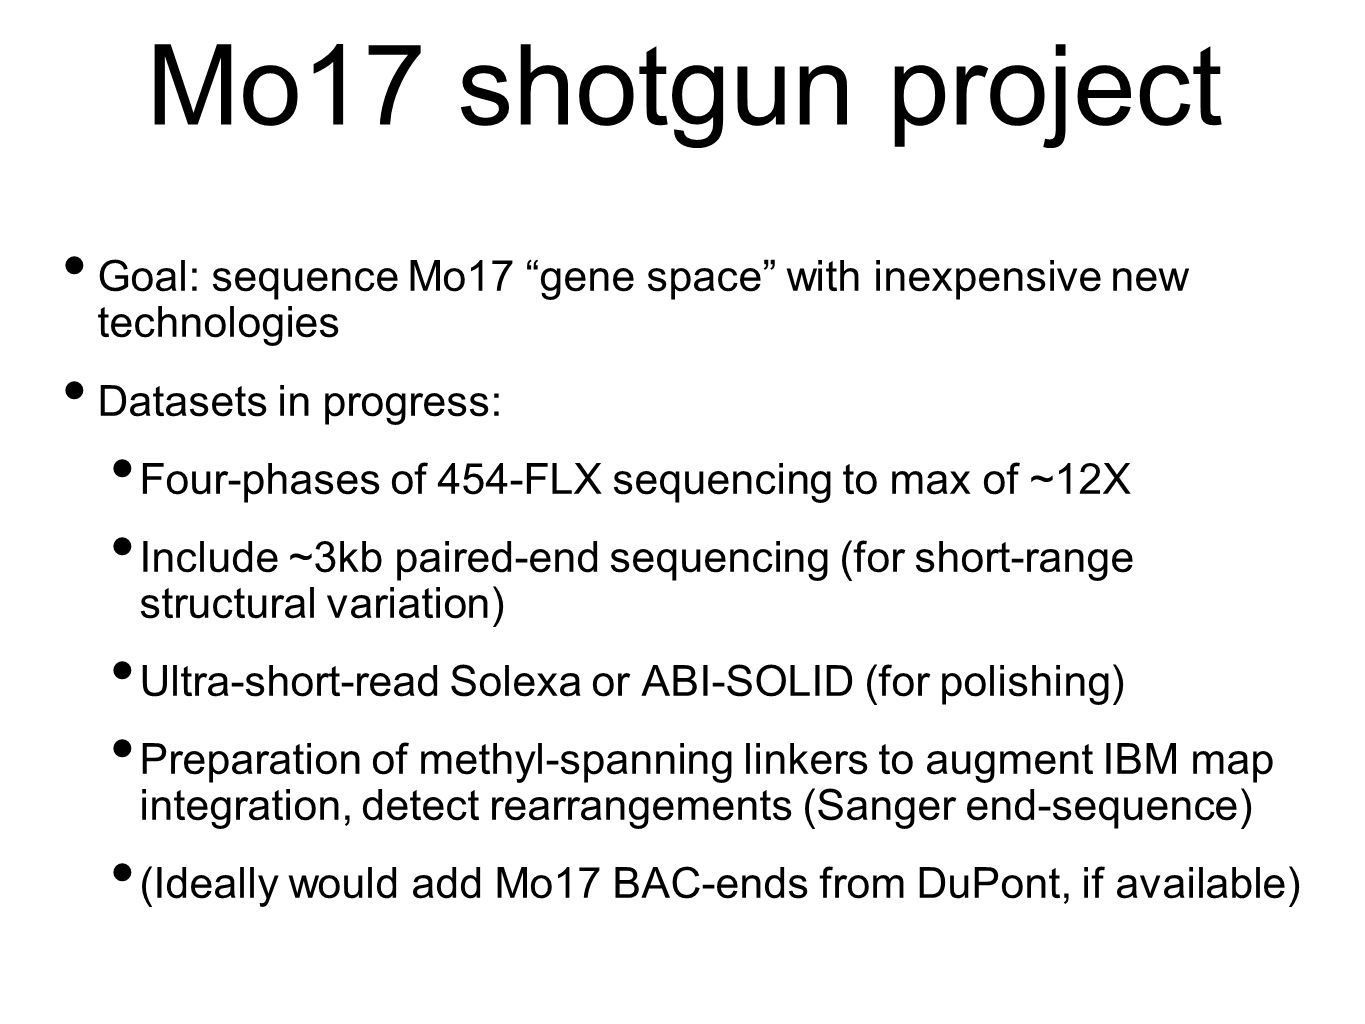 Shotgun Independent of tiling path -Can detect non-repetitive gene space even within otherwise complex regions that may not be in tiling path Disadvantages of short-reads -Cant expect to recover repetitive sequences